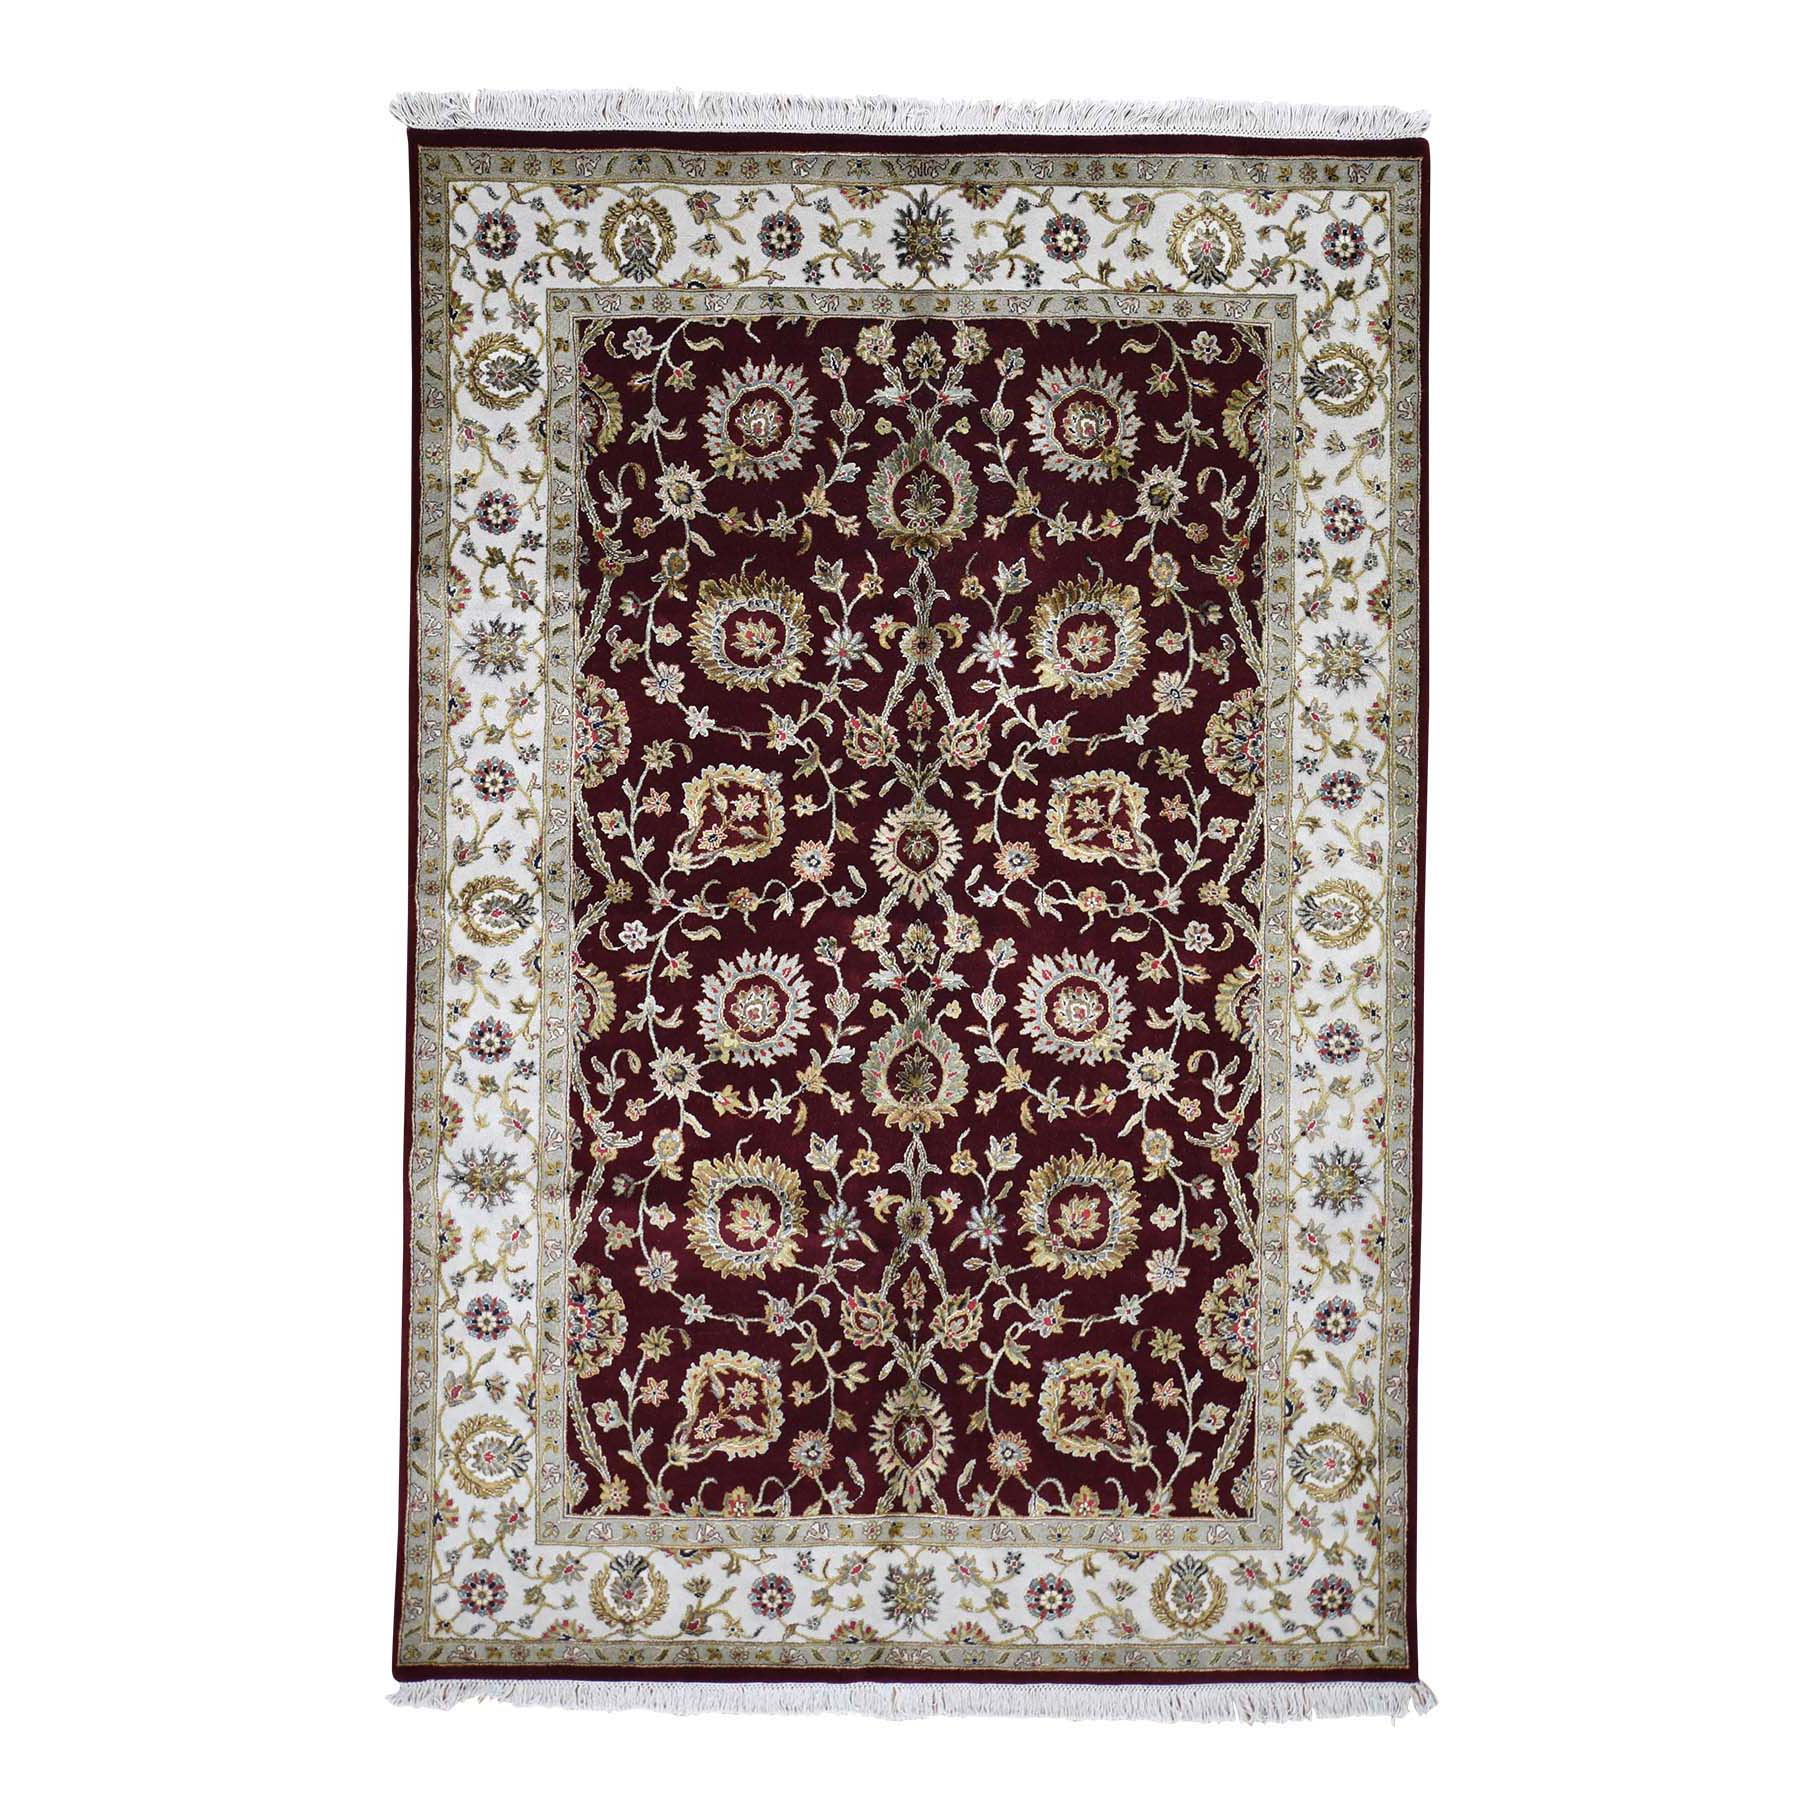 6'X9' Rajasthan Half Wool And Half Silk Hand-Knotted Oriental Rug moadc0e8